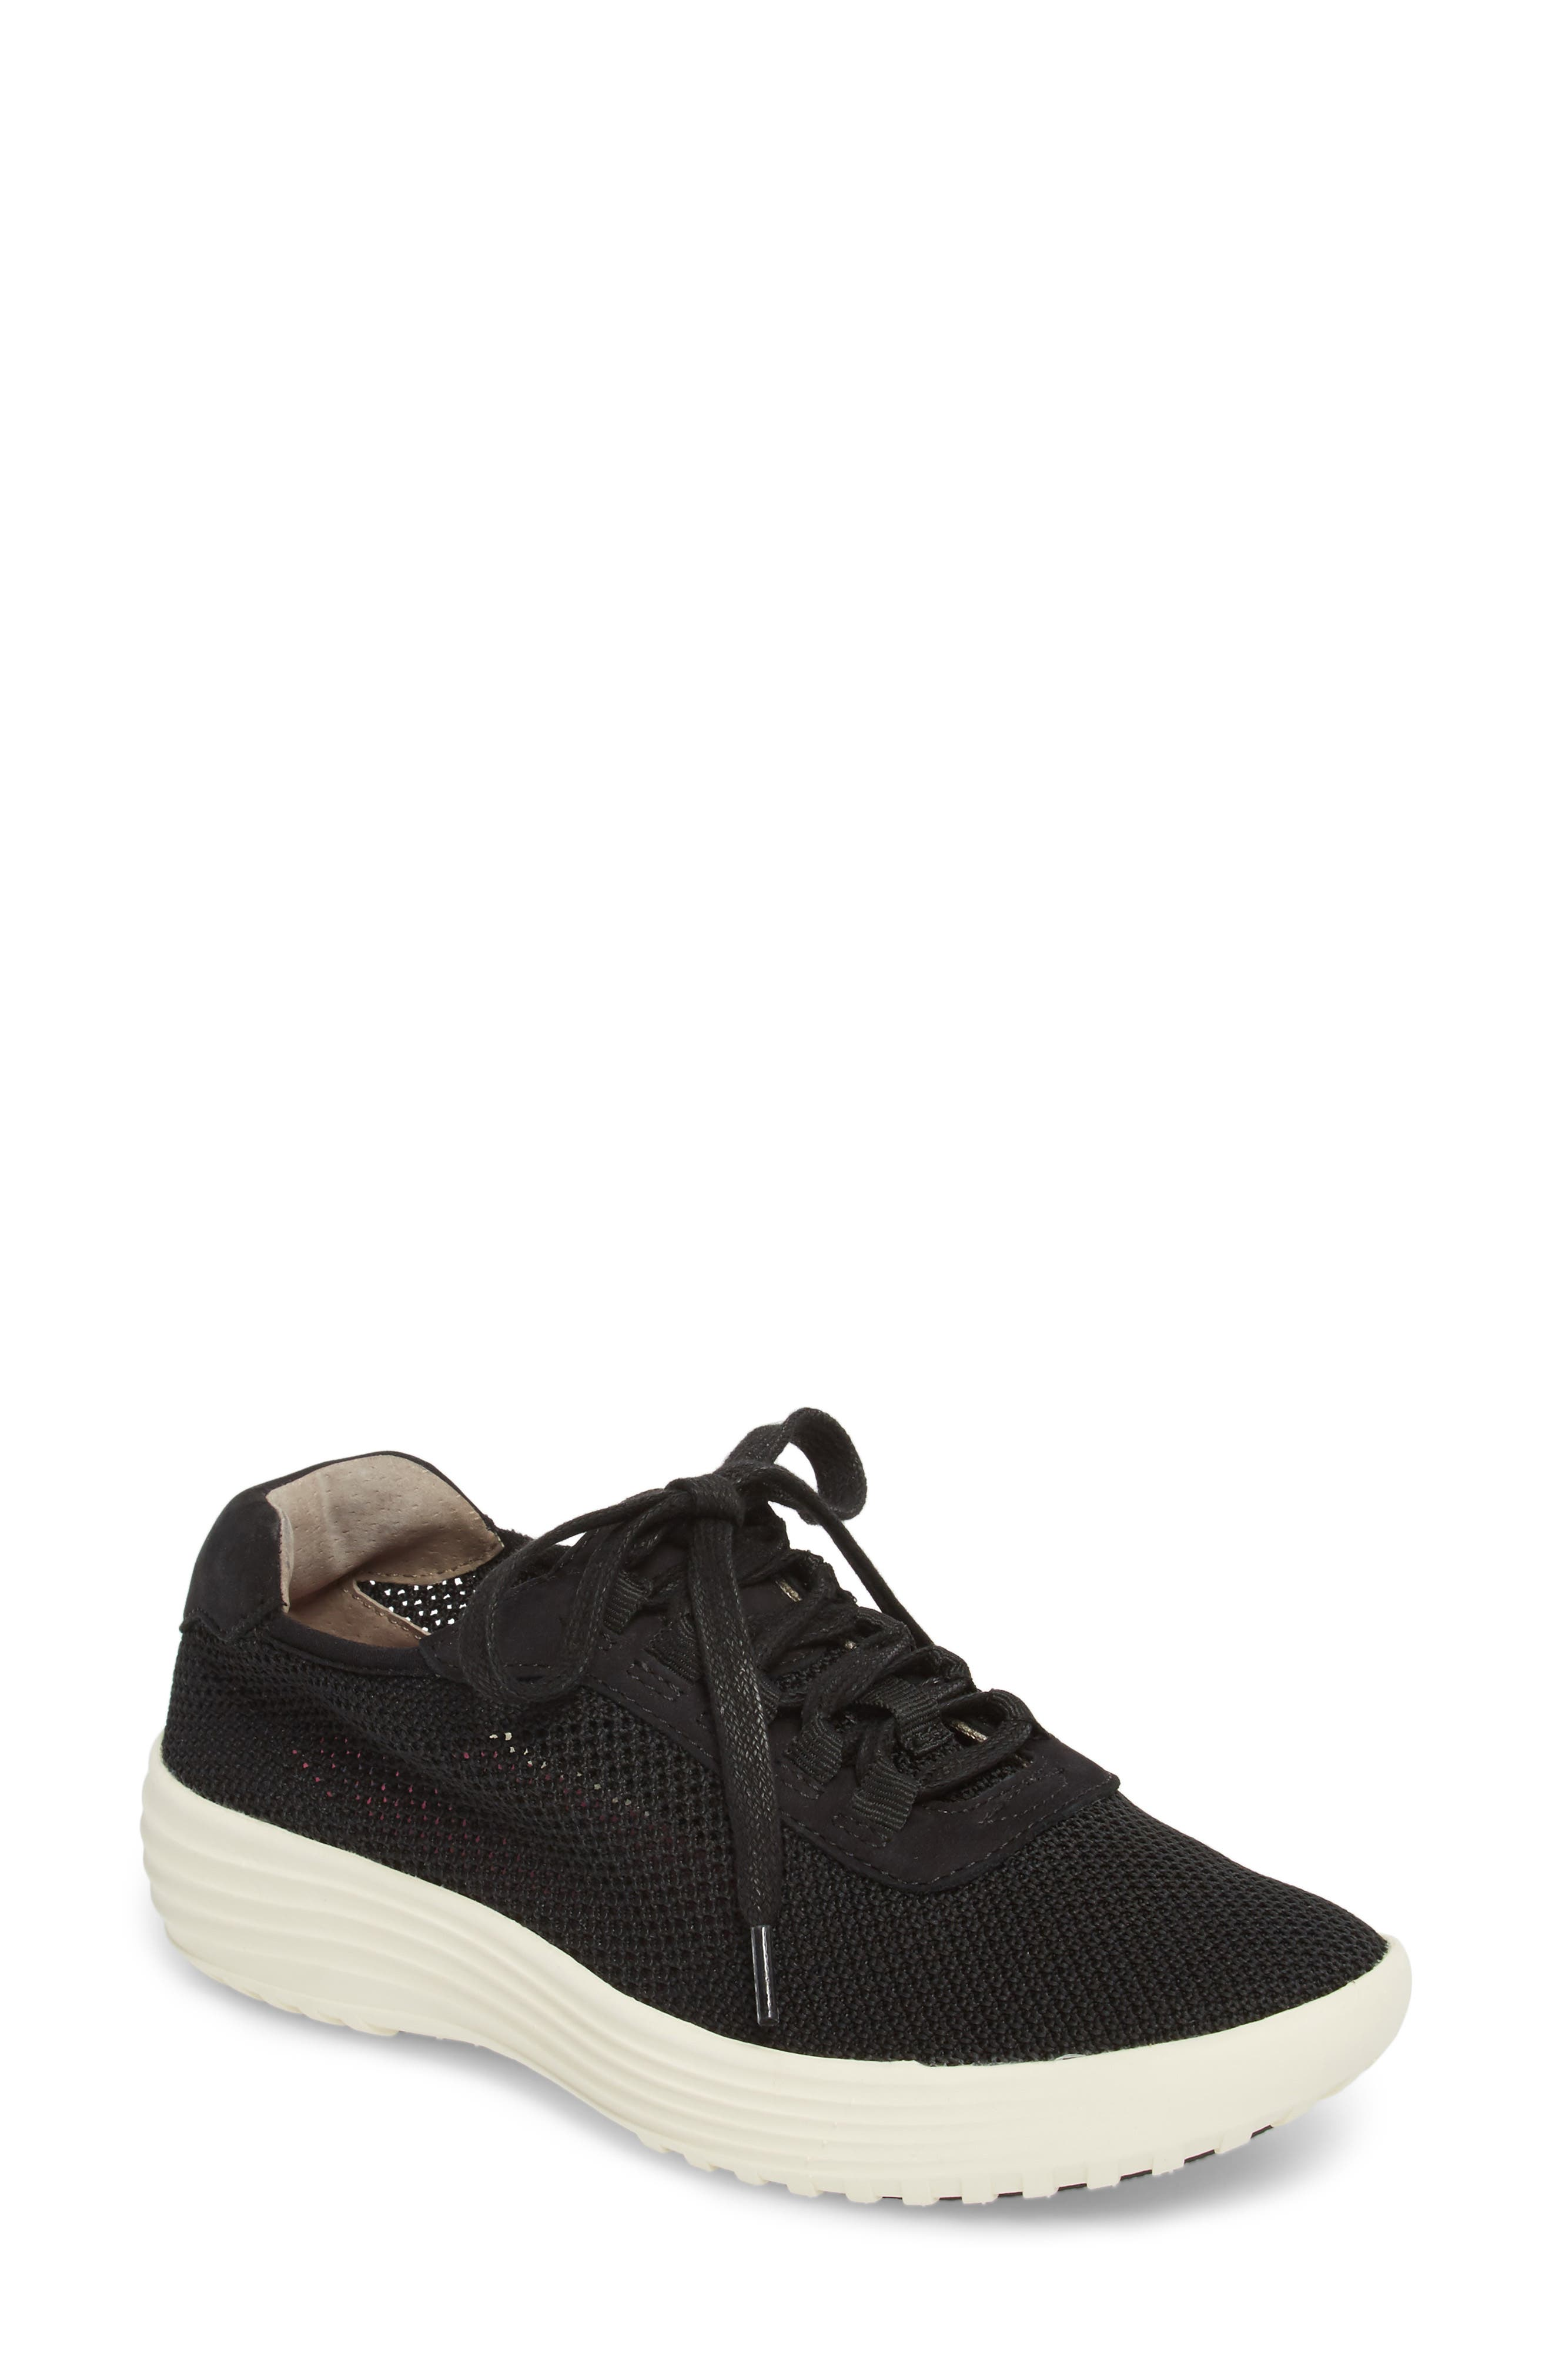 Malibu Sneaker,                             Main thumbnail 1, color,                             BLACK KNIT FABRIC